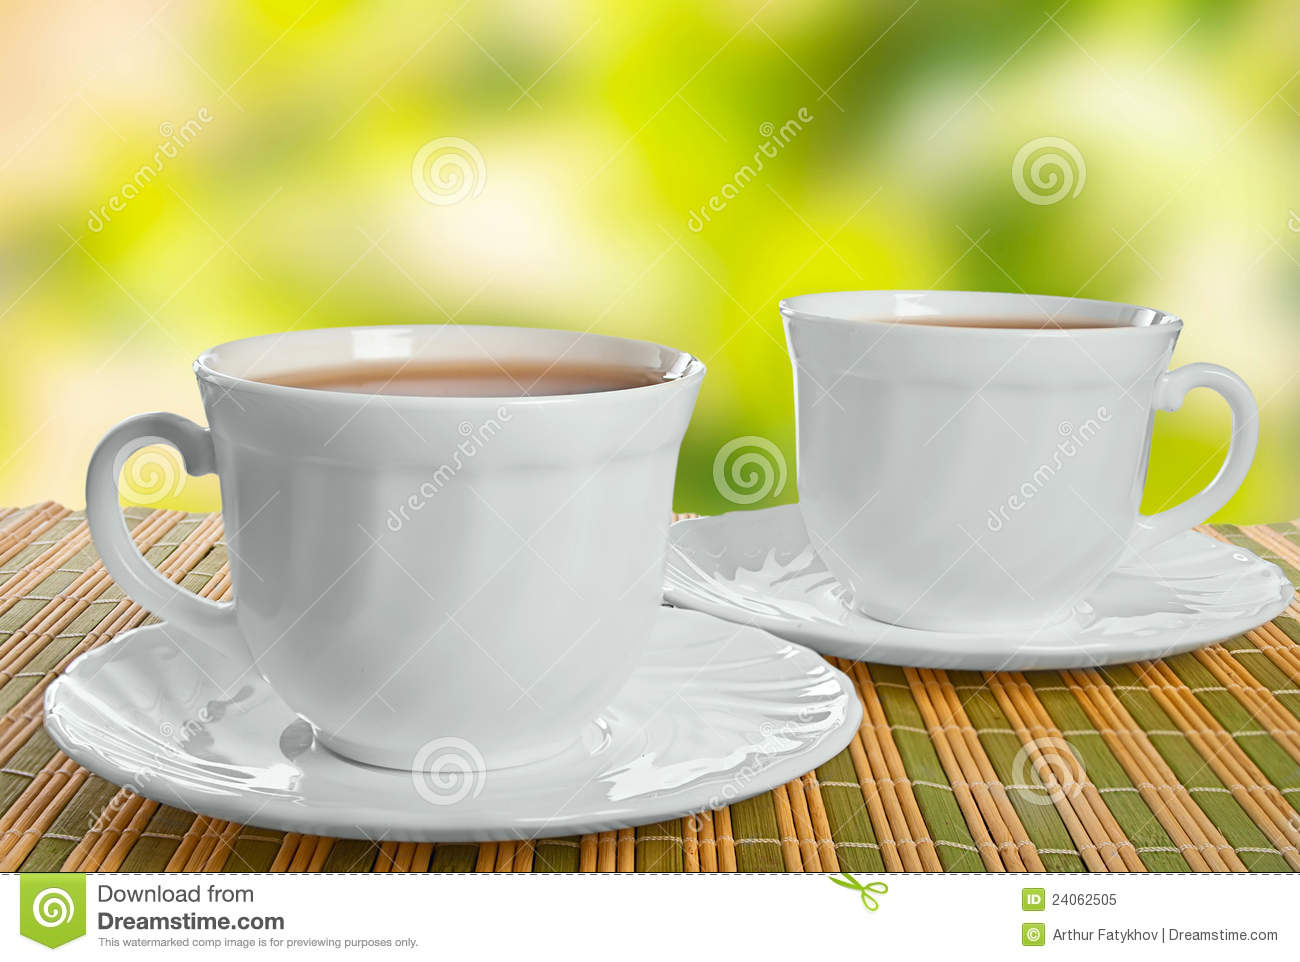 Two teacups on abstract background.